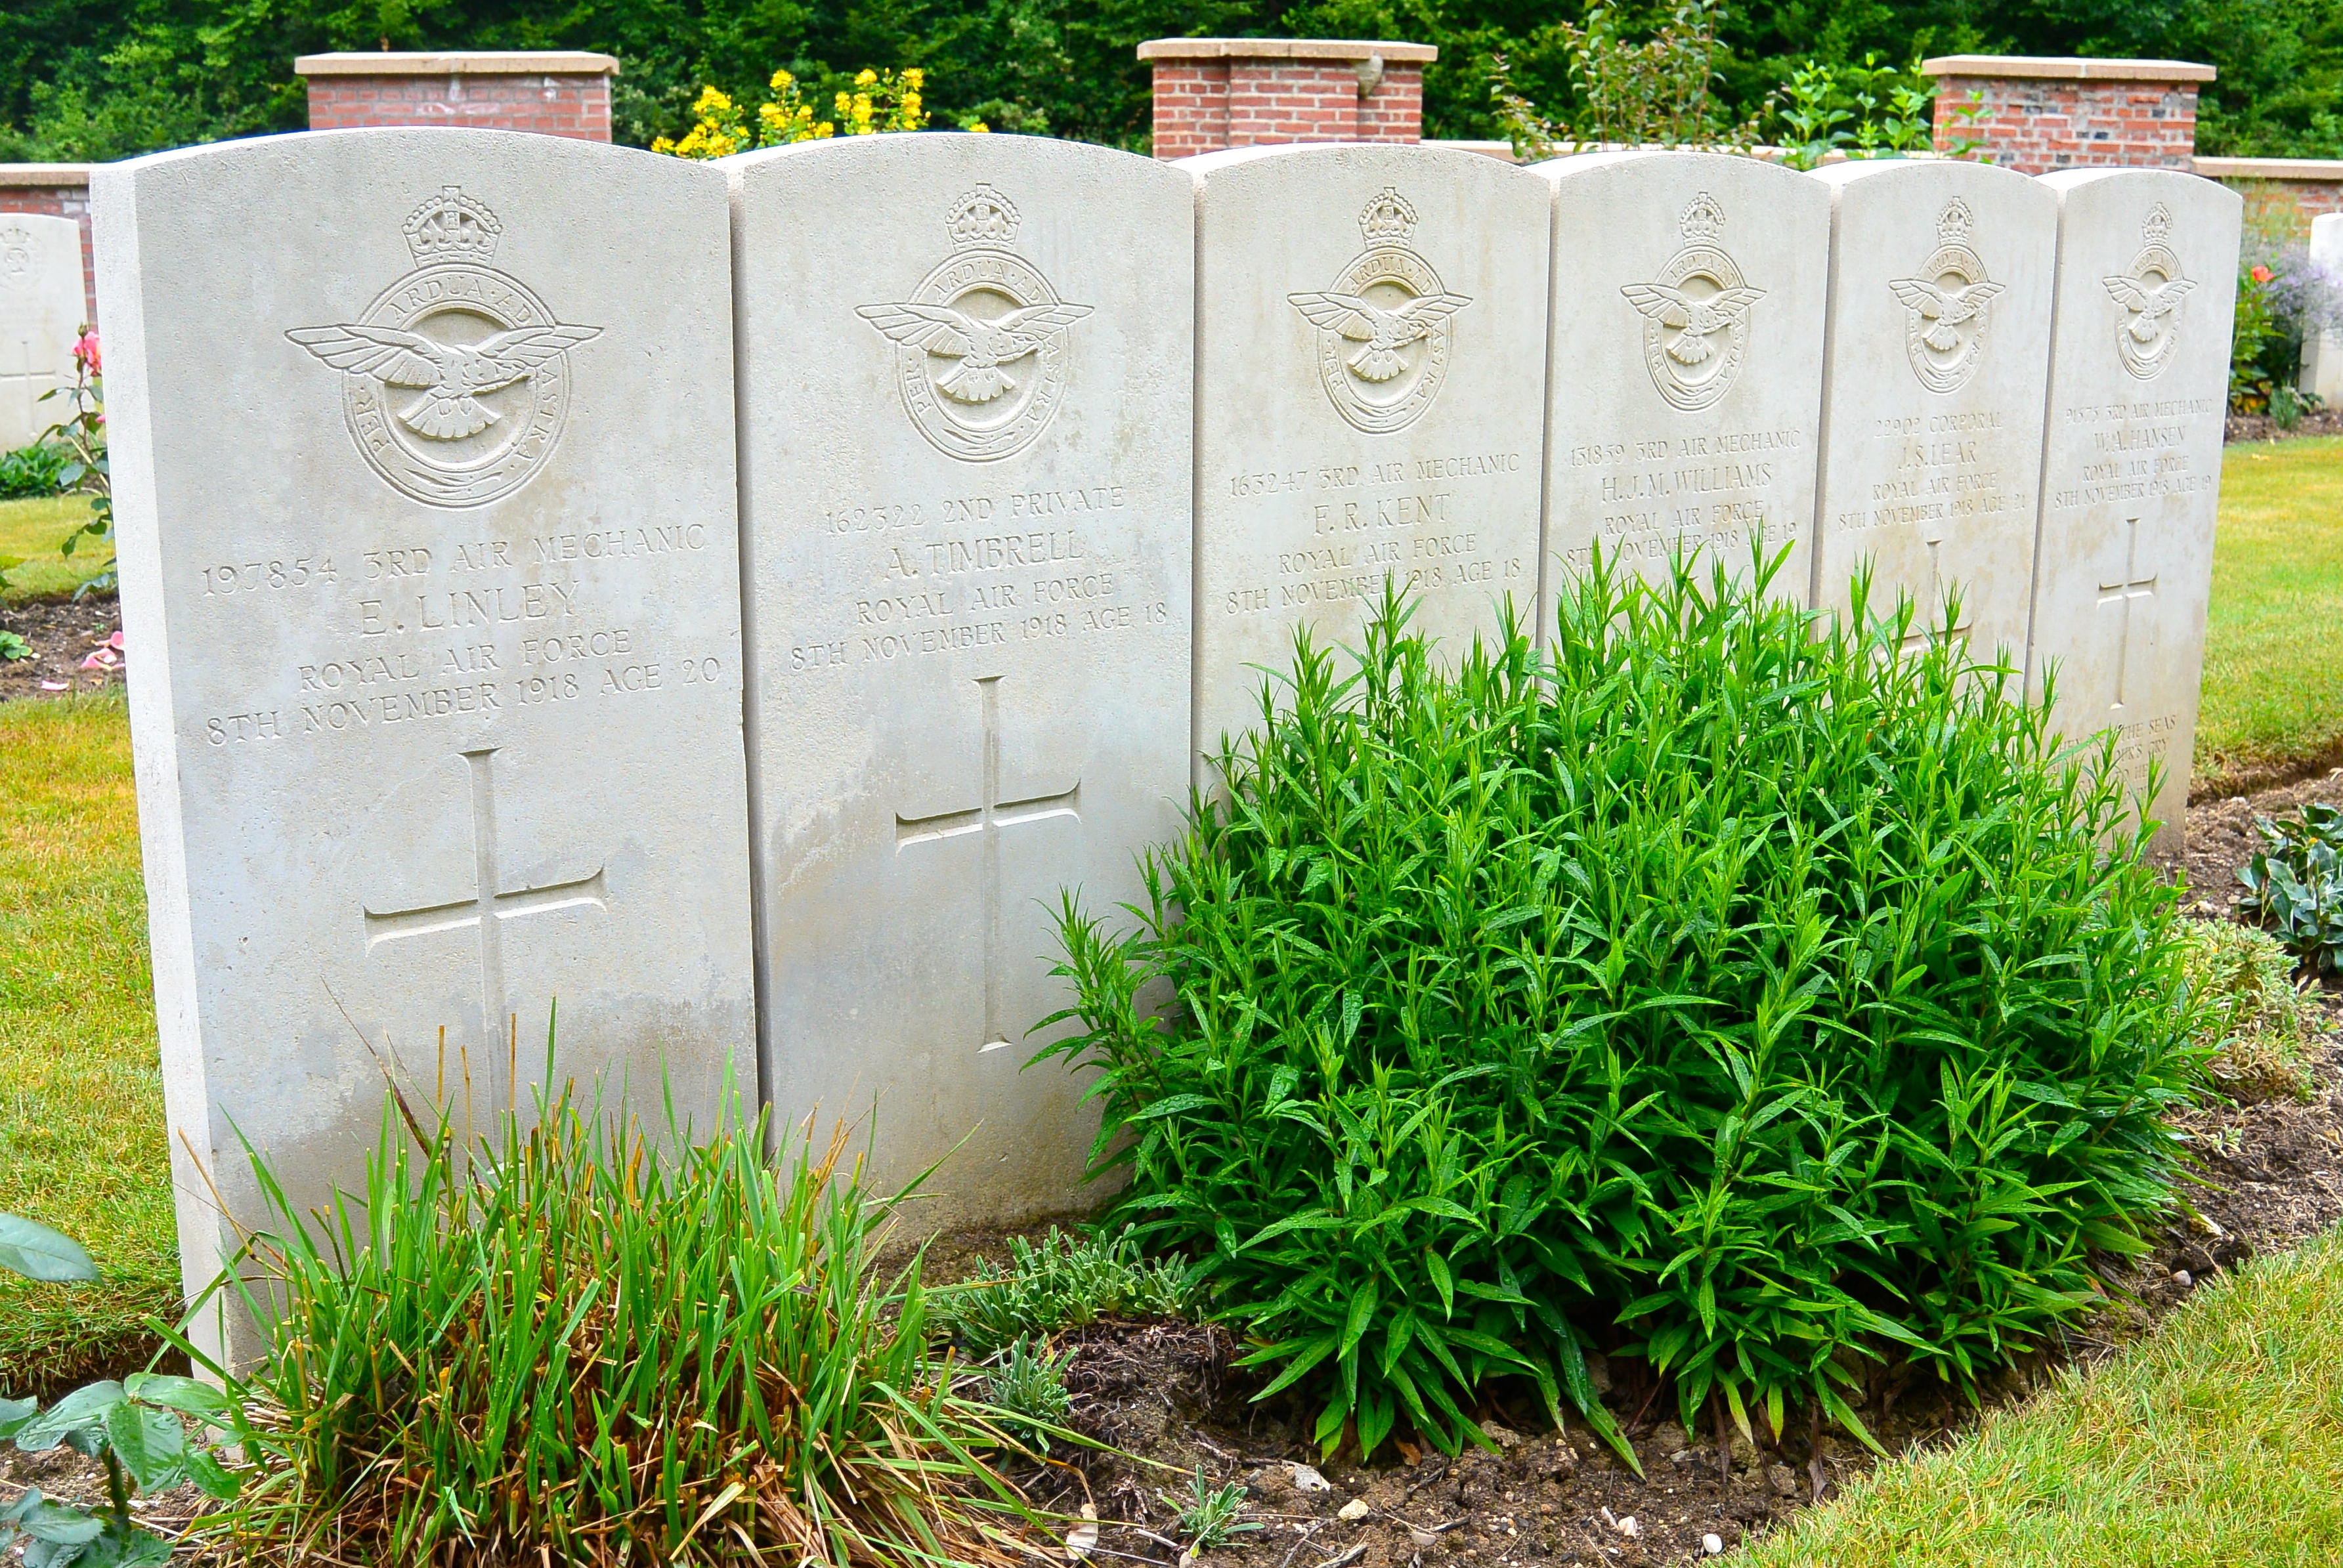 Epitaphs Of The Great War Armstrong Ac Heat Strip Wiring Whilst Hansen And Linley Have Individual Grave References If16 If18 Other Bodies A Single Reference If17